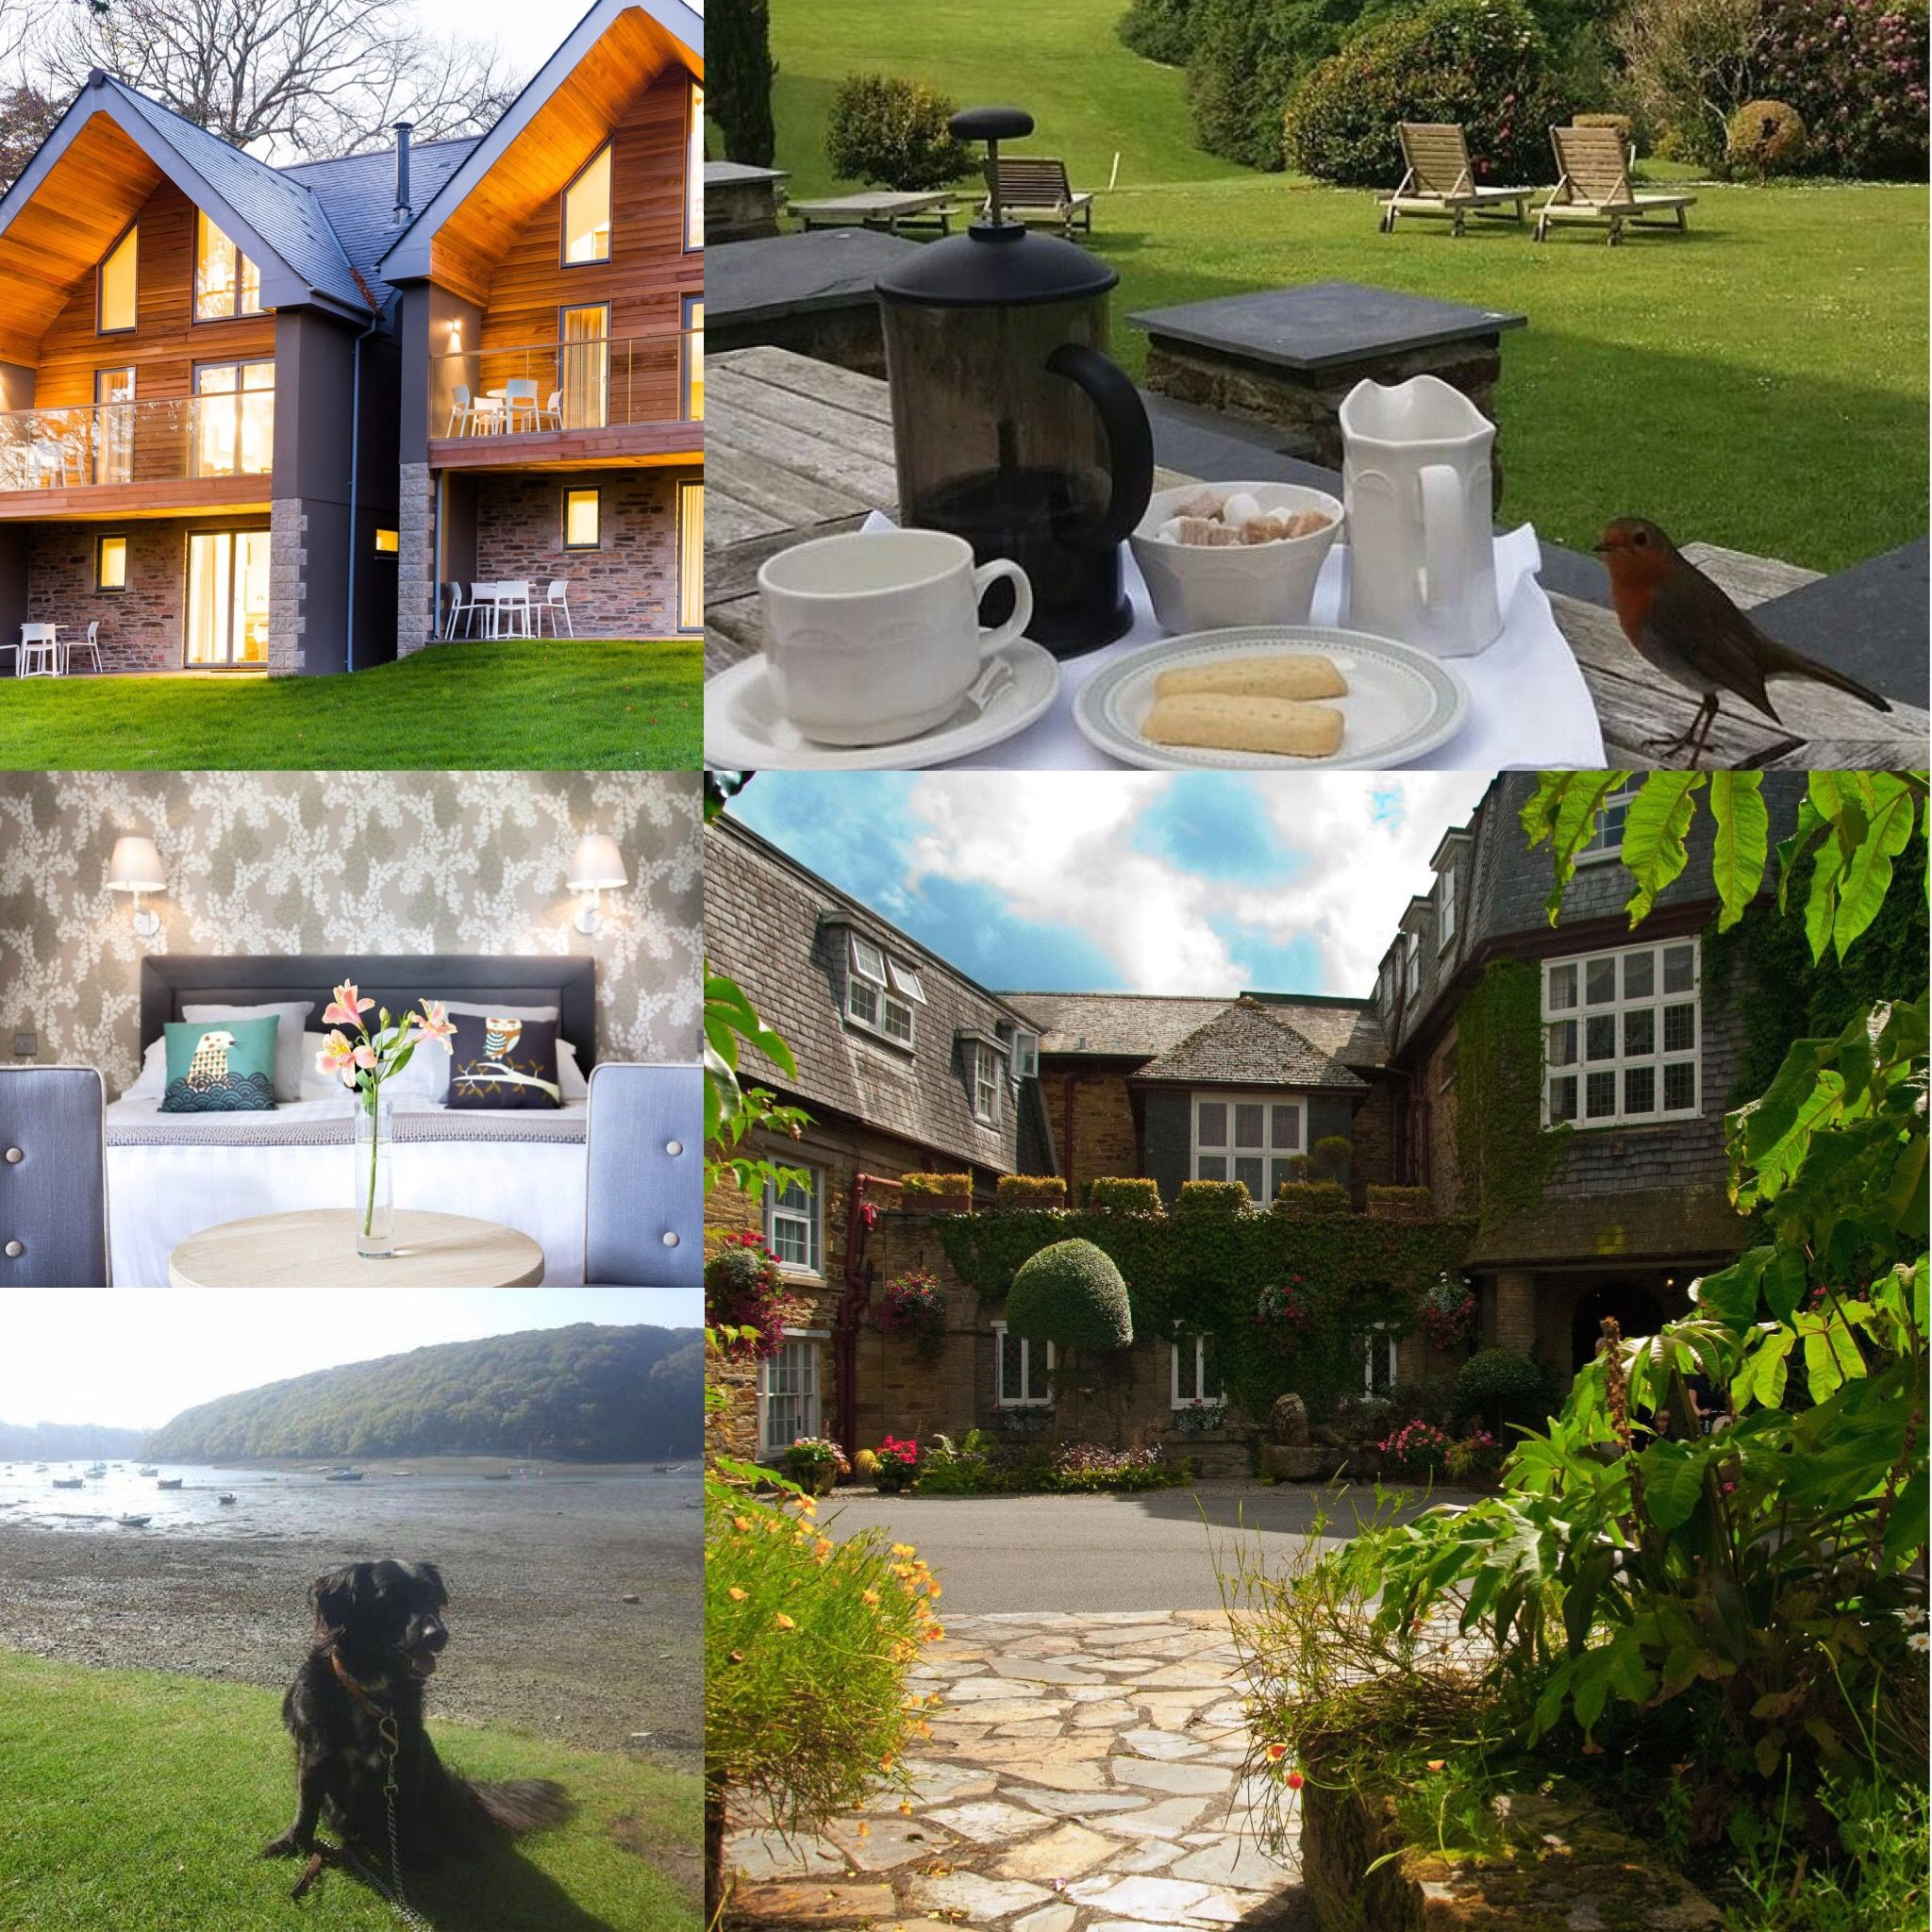 Budock Vean Hotel And Spa Offers Luxury Dog Friendly Accommodation In Beautiful Cornwall Https